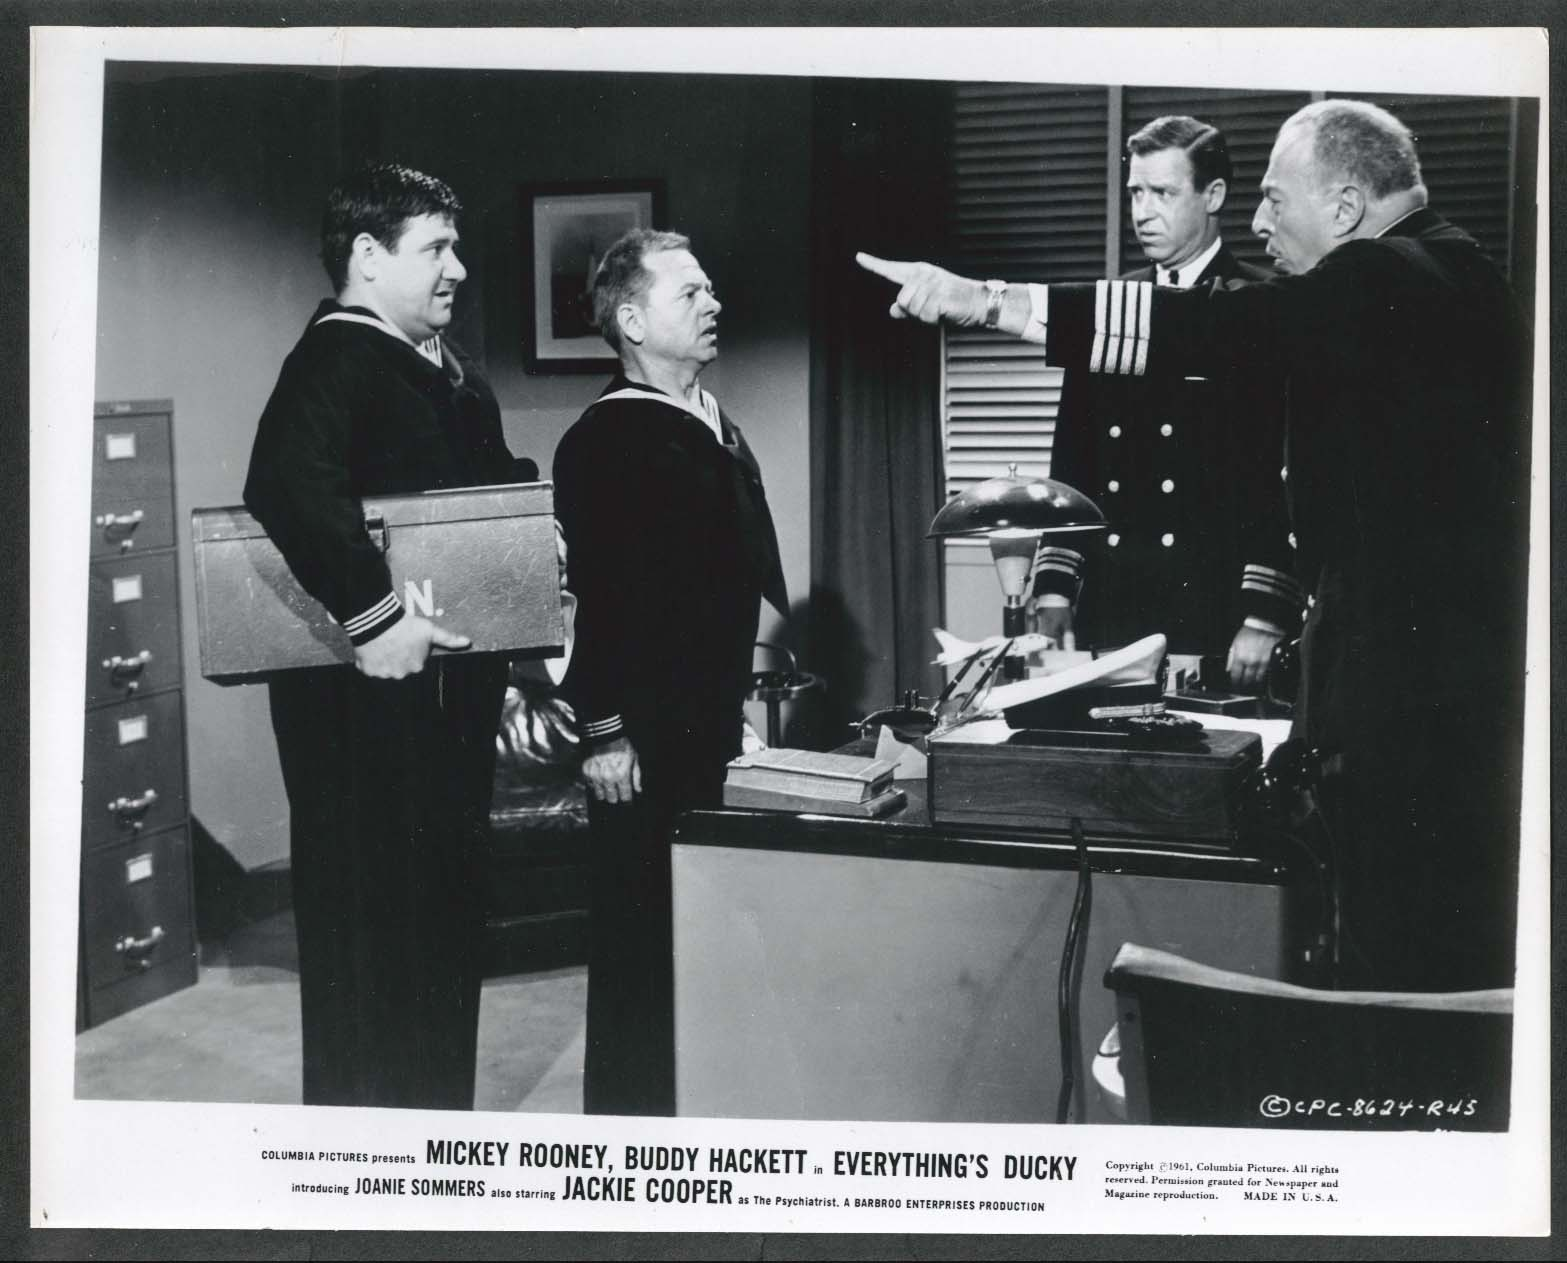 Image for Buddy Hackett Mickey Rooney Gene Blakely Everything's Ducky 8x10 photo 1961 #45